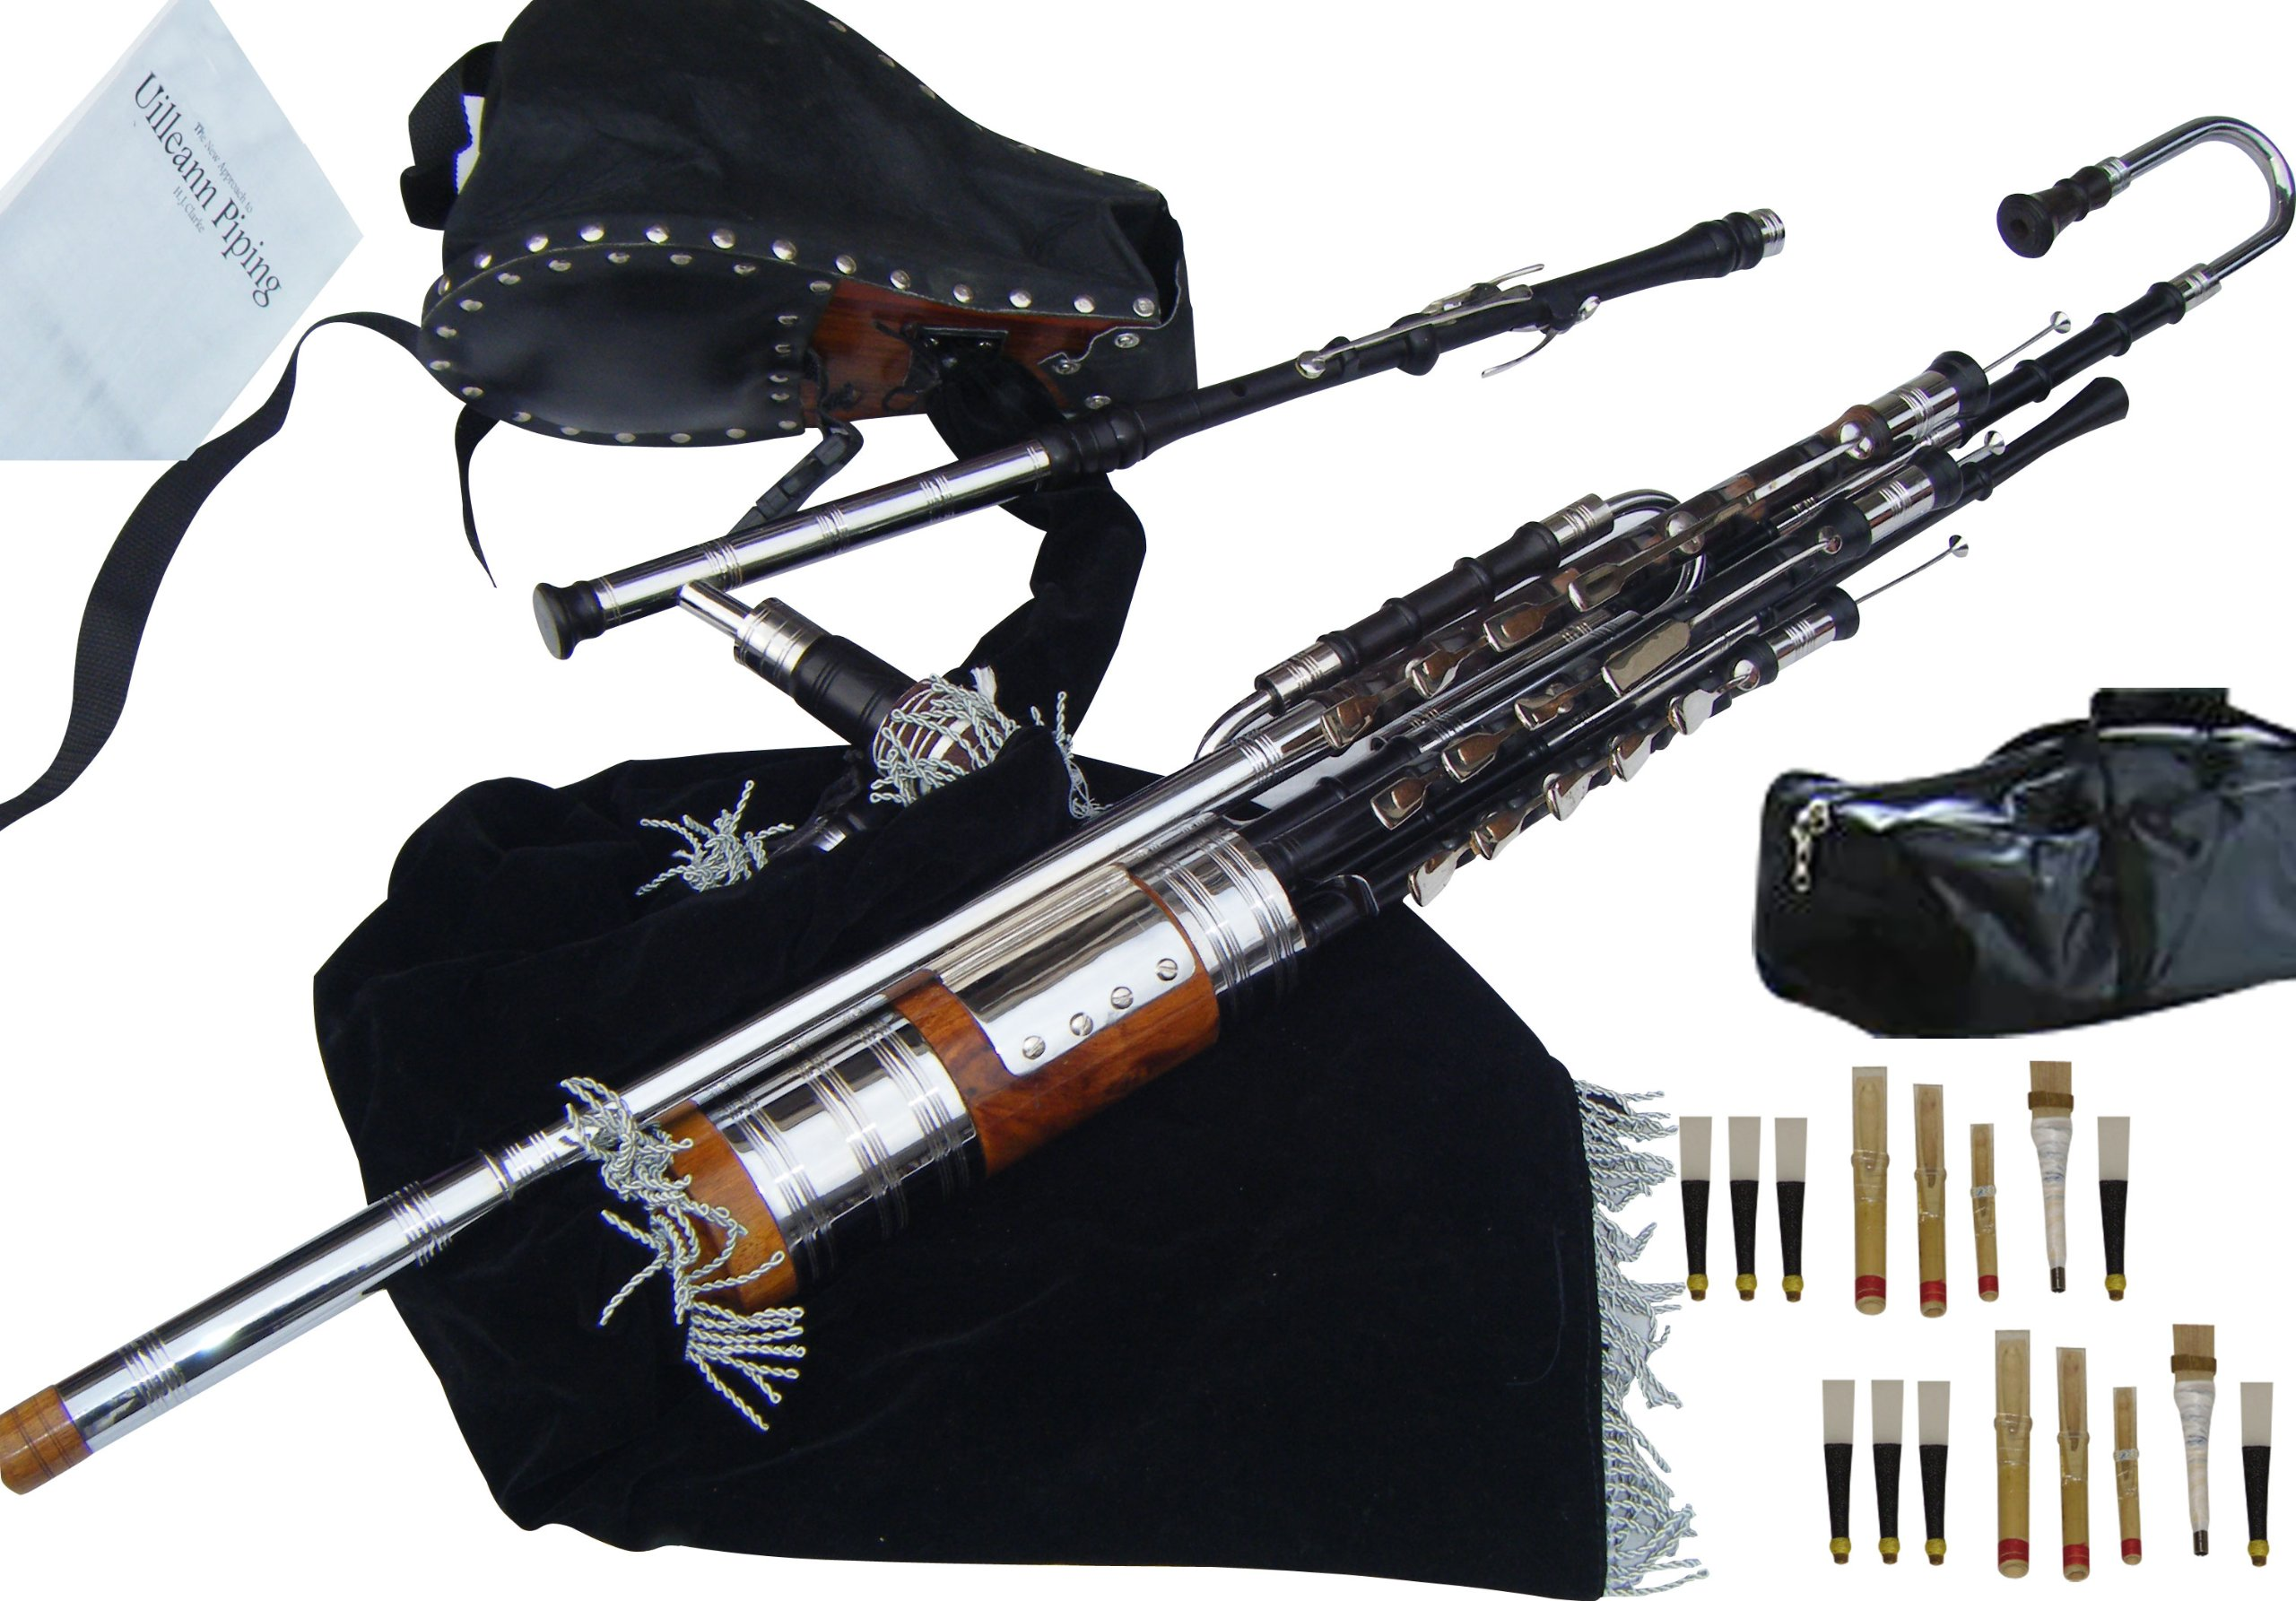 Irish Uilleann Bagpipe Full Set, with Regulators & 3 Keyed Chanter (African Blackwood) Complete Set